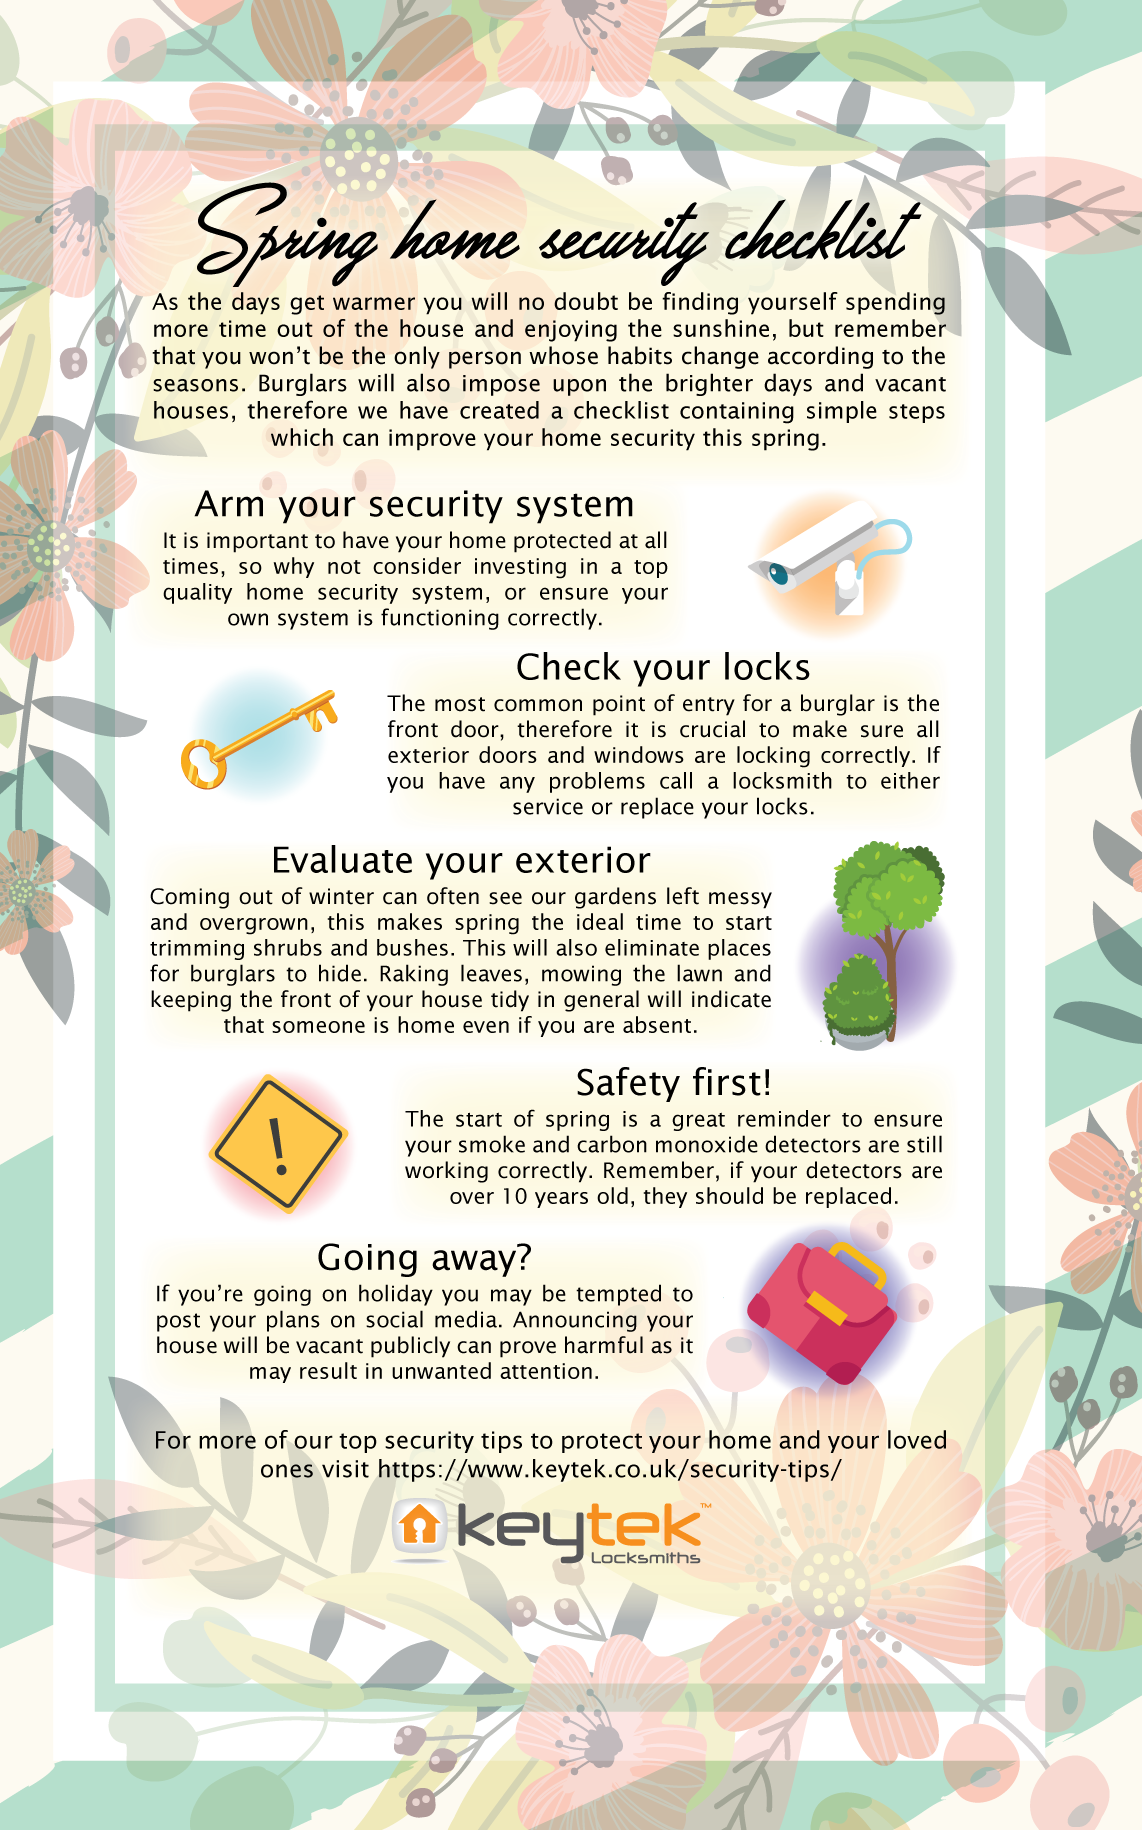 Spring security checklist